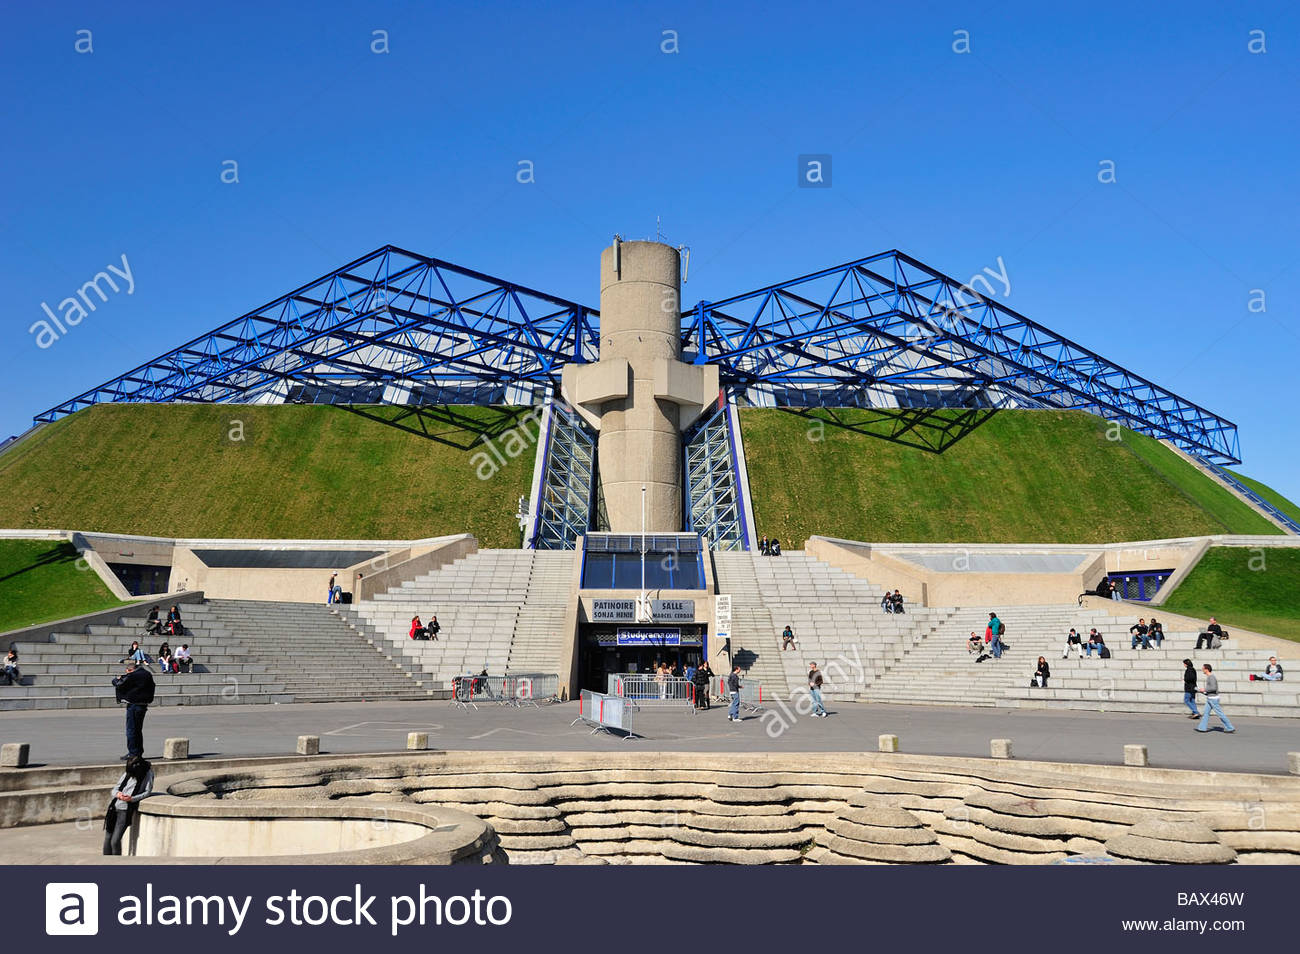 Studio 28 Paris, Palais Omnisports Paris Bercy, Paris, France Stock Photo, Royalty ...